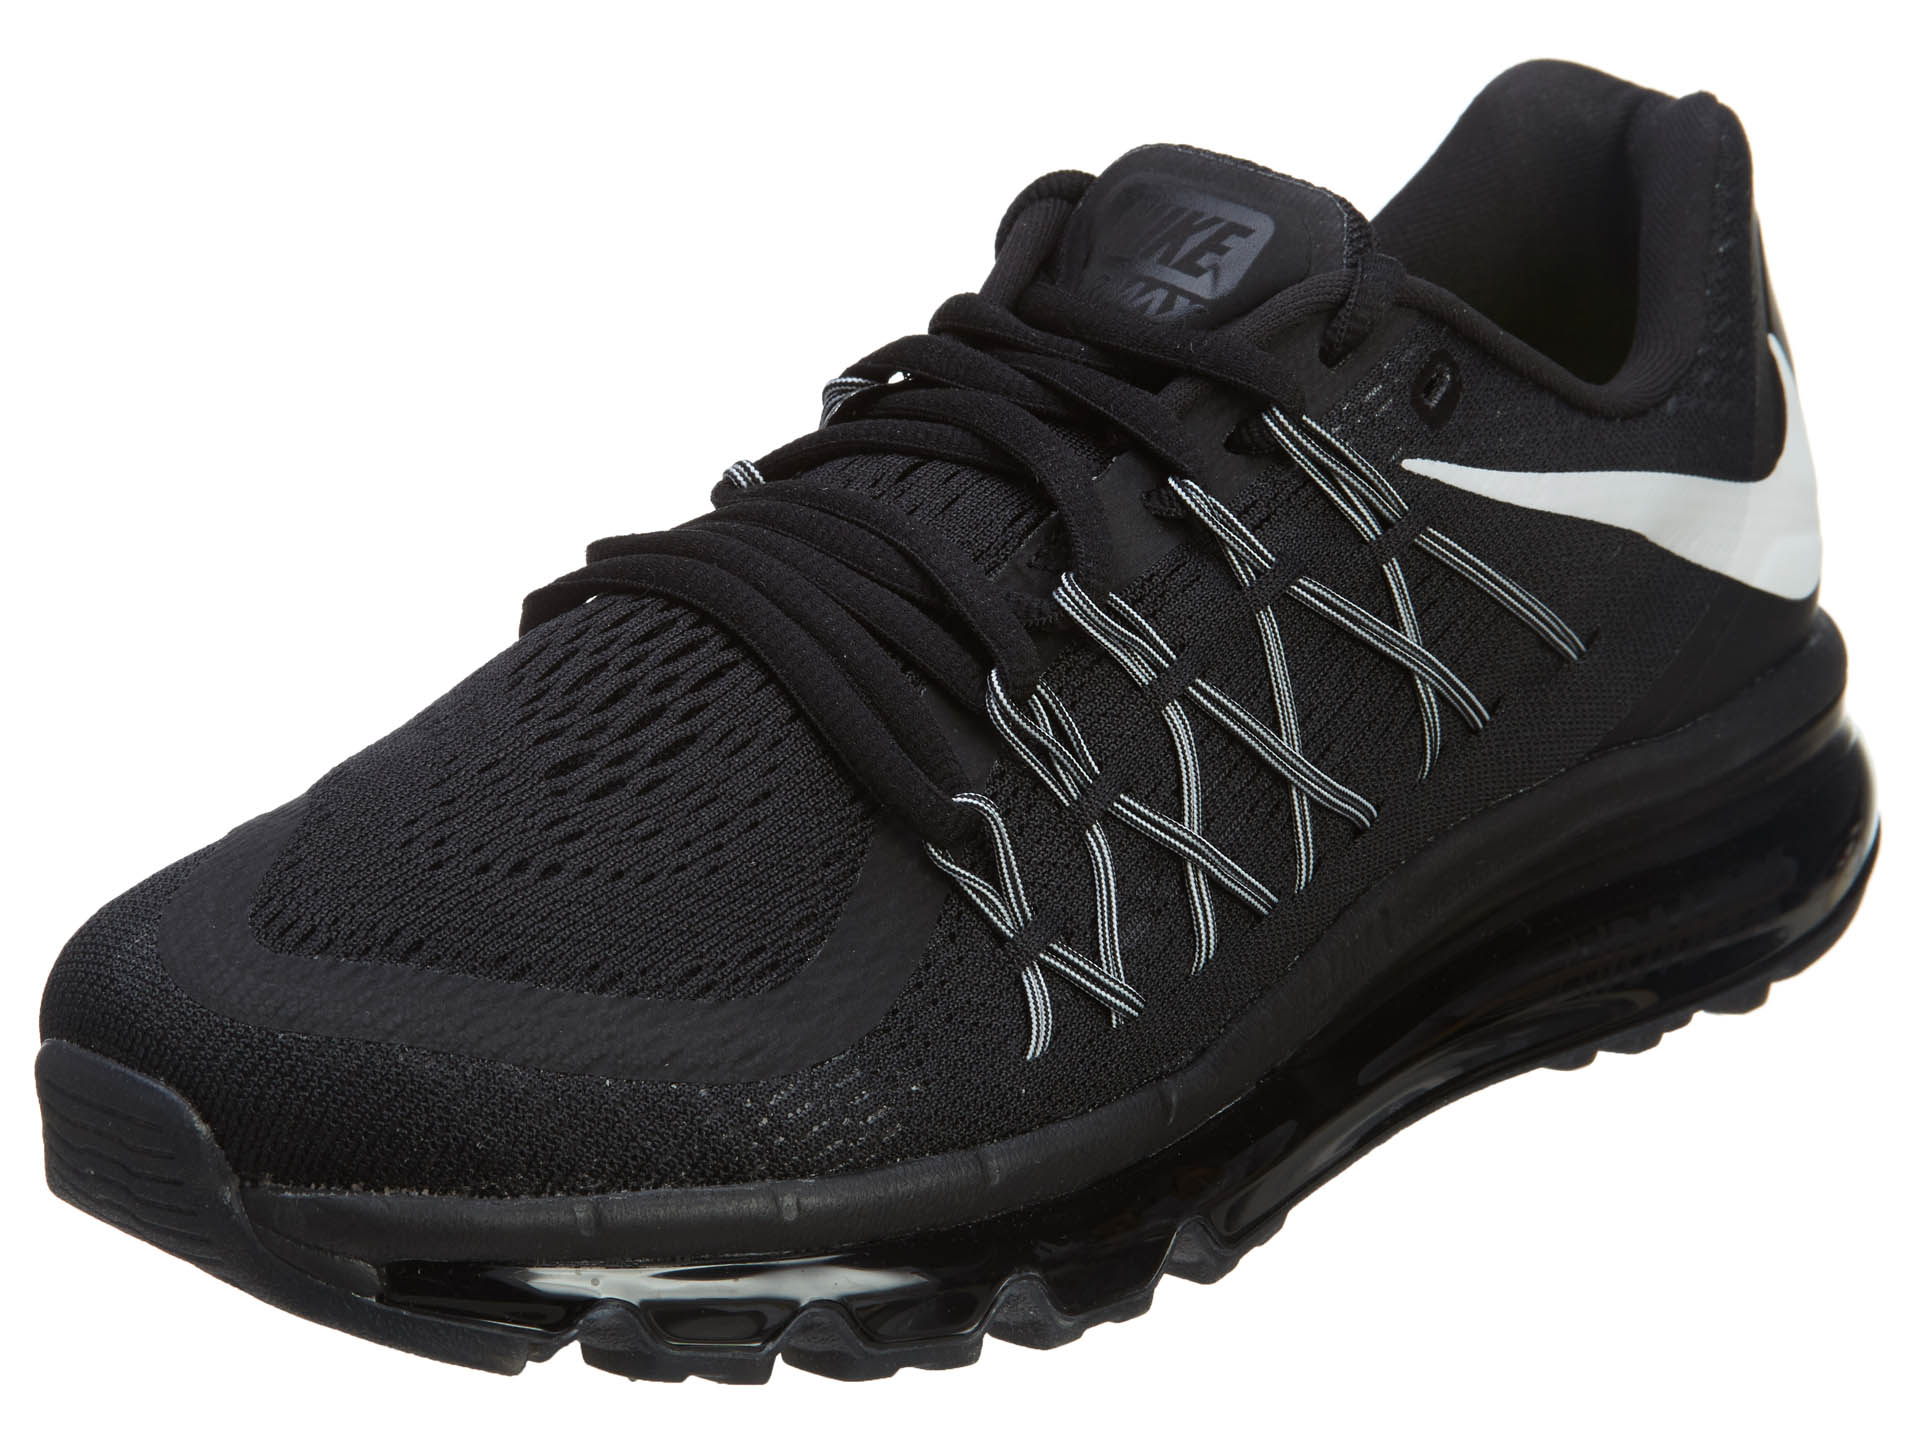 Nike Nike Air Max 2015 Mens Running Shoes BlackWhite 698902 001